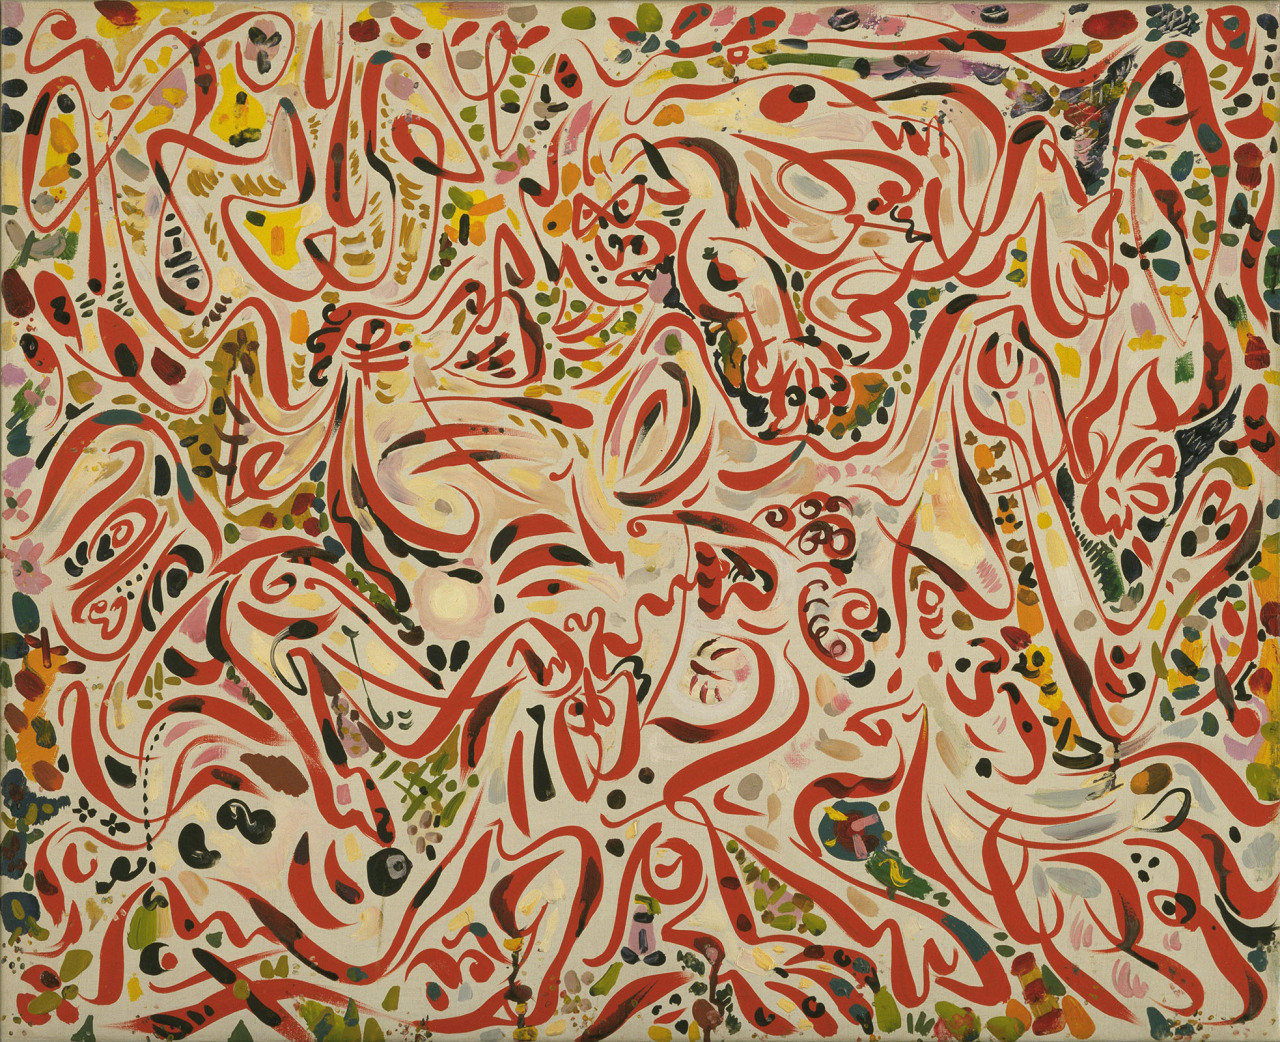 Andre Masson, The Kill, 1944 oil on canvas, 21 3/4 × 26 3/4 inches Download Image Visit Source @ moma.org